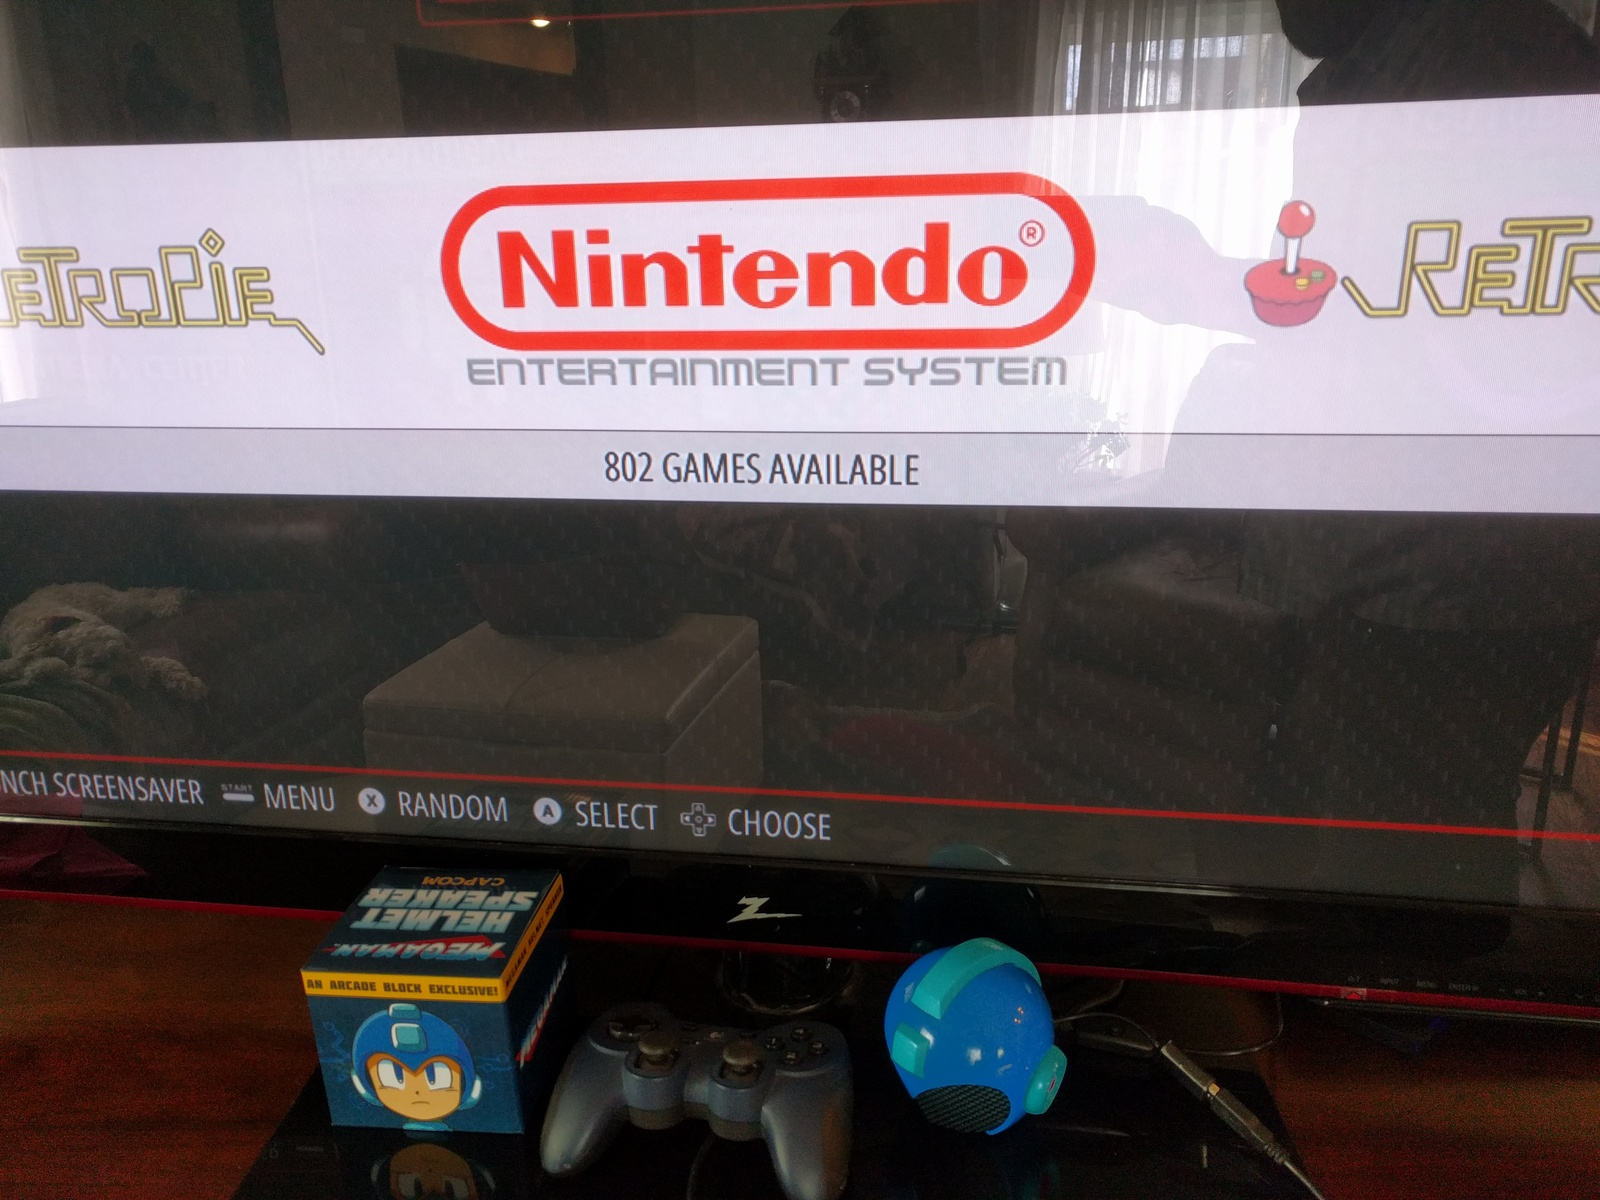 MegaMan Helmet gaming system w/ Raspberry Pi ZeroW installed.16GB SD and Games